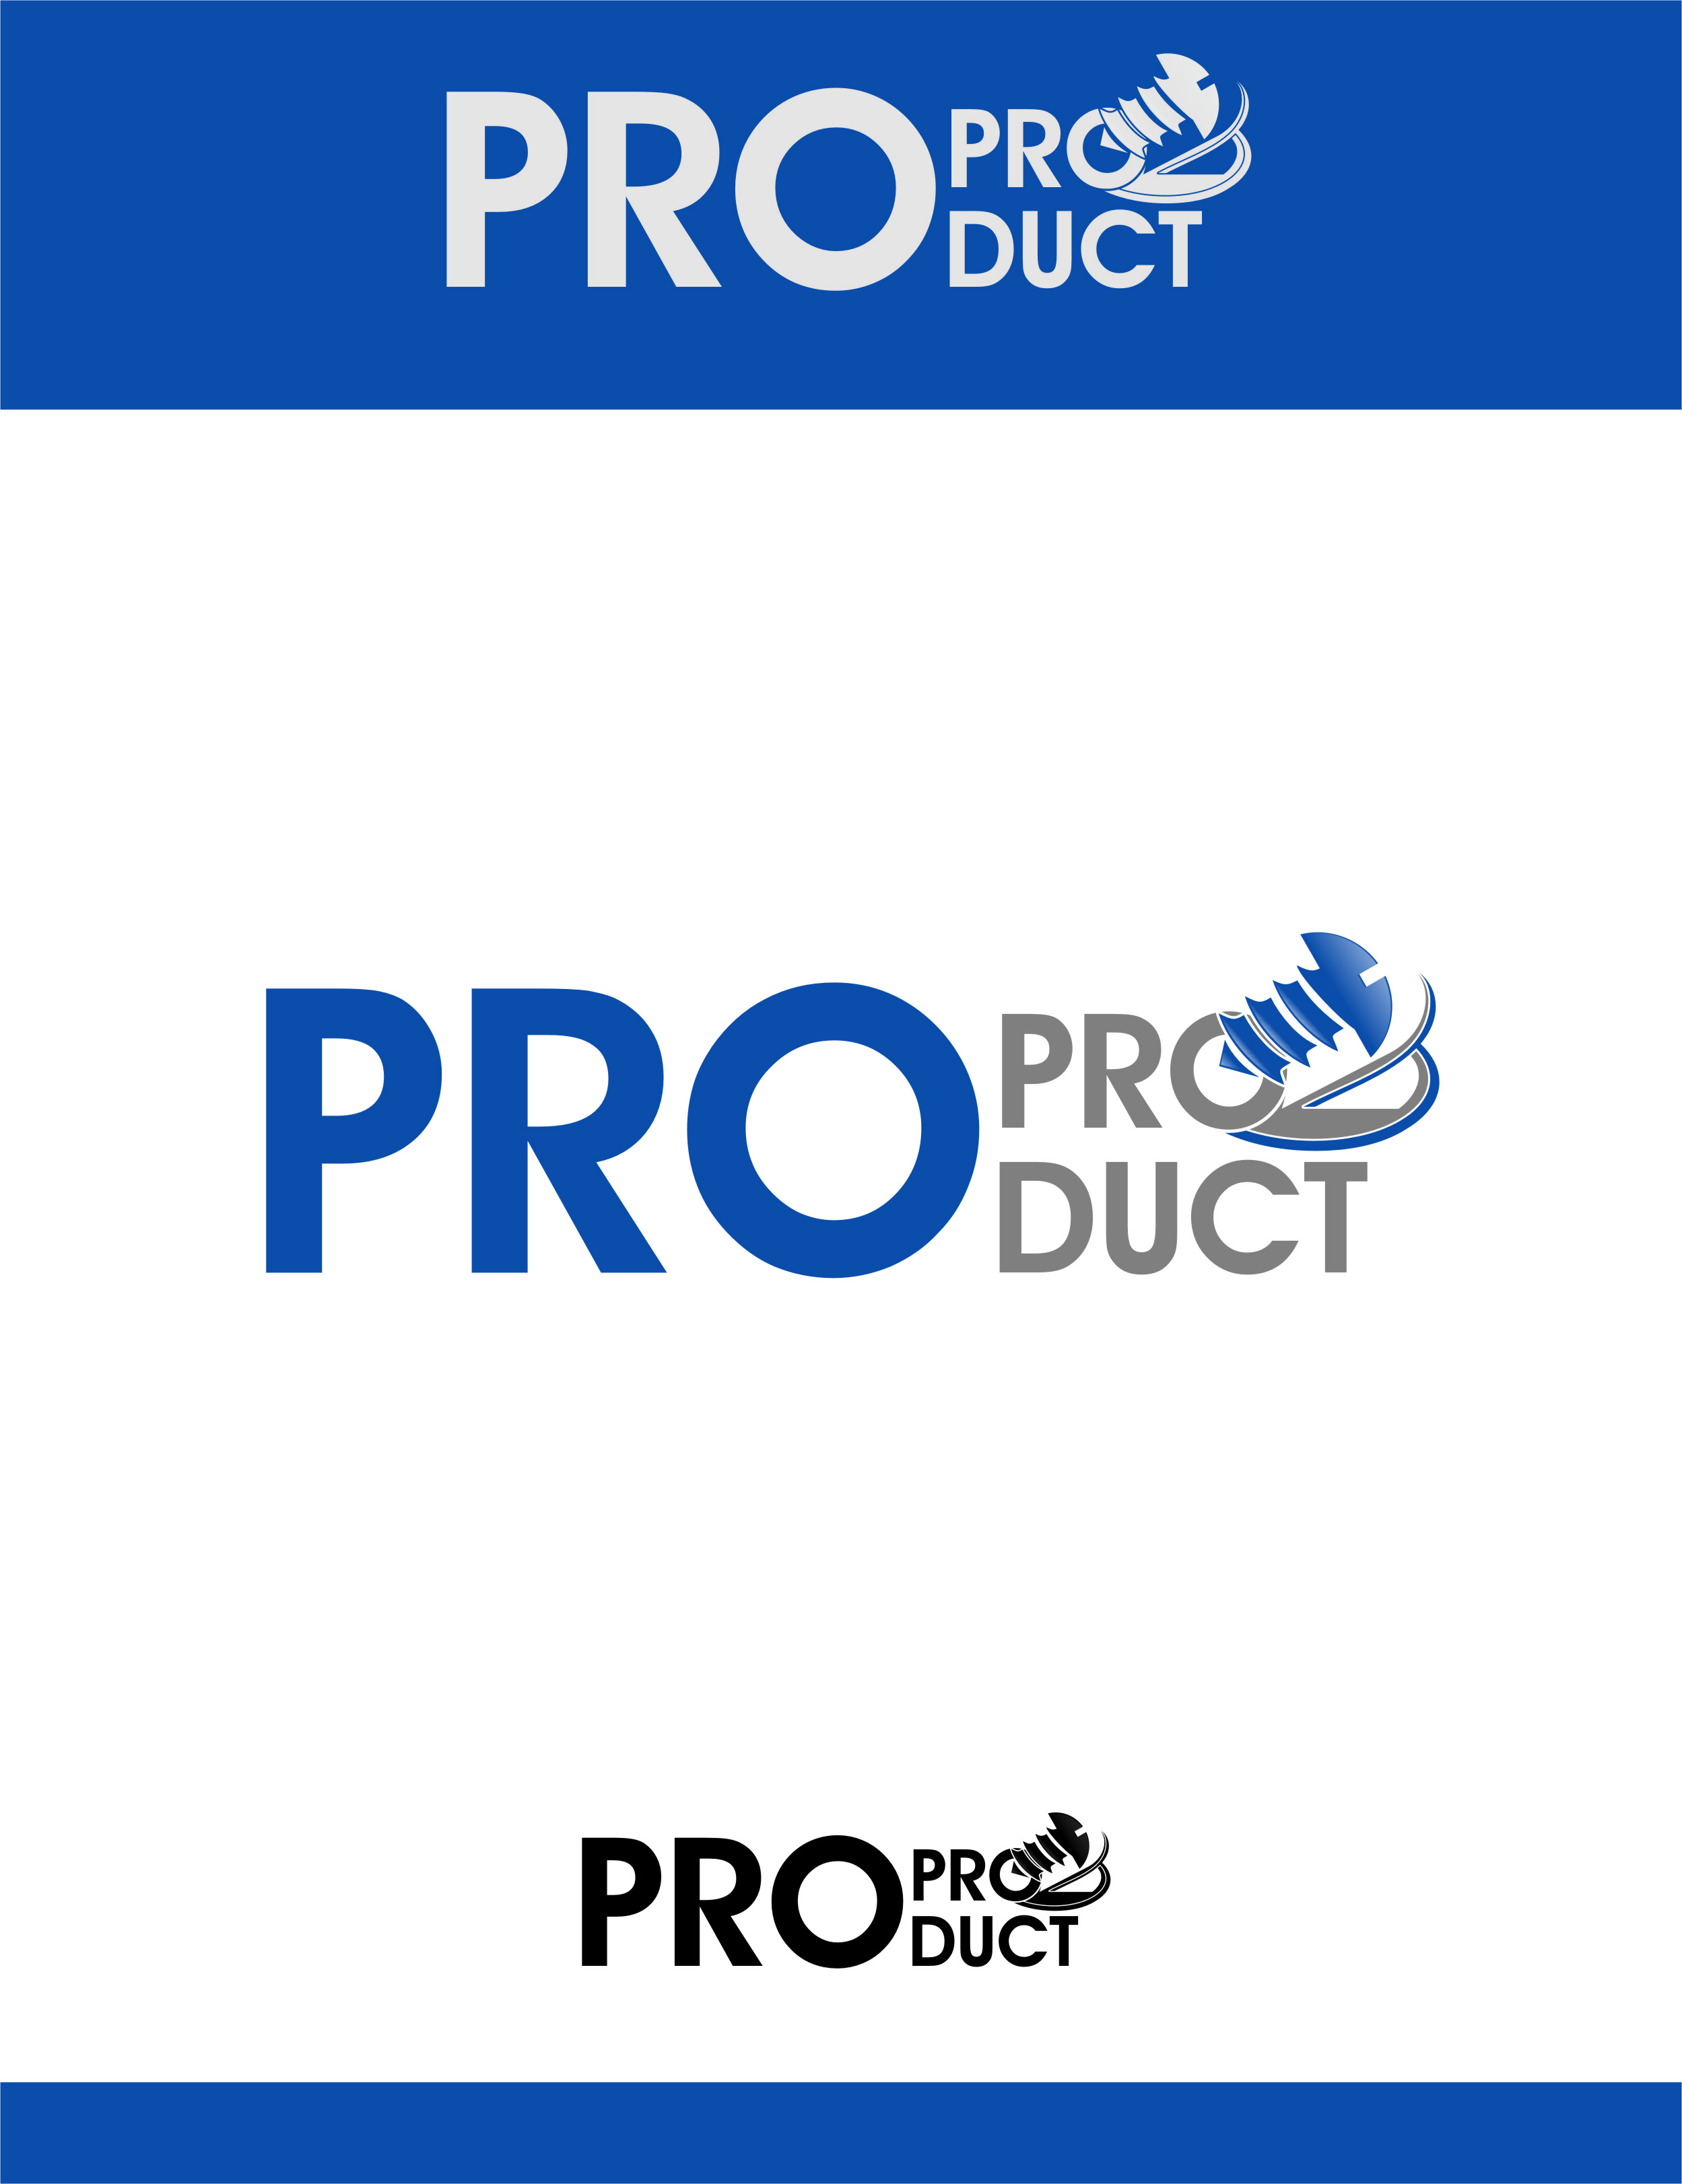 Logo Design by RasYa Muhammad Athaya - Entry No. 41 in the Logo Design Contest Fun yet Professional Logo Design for ProProducts.